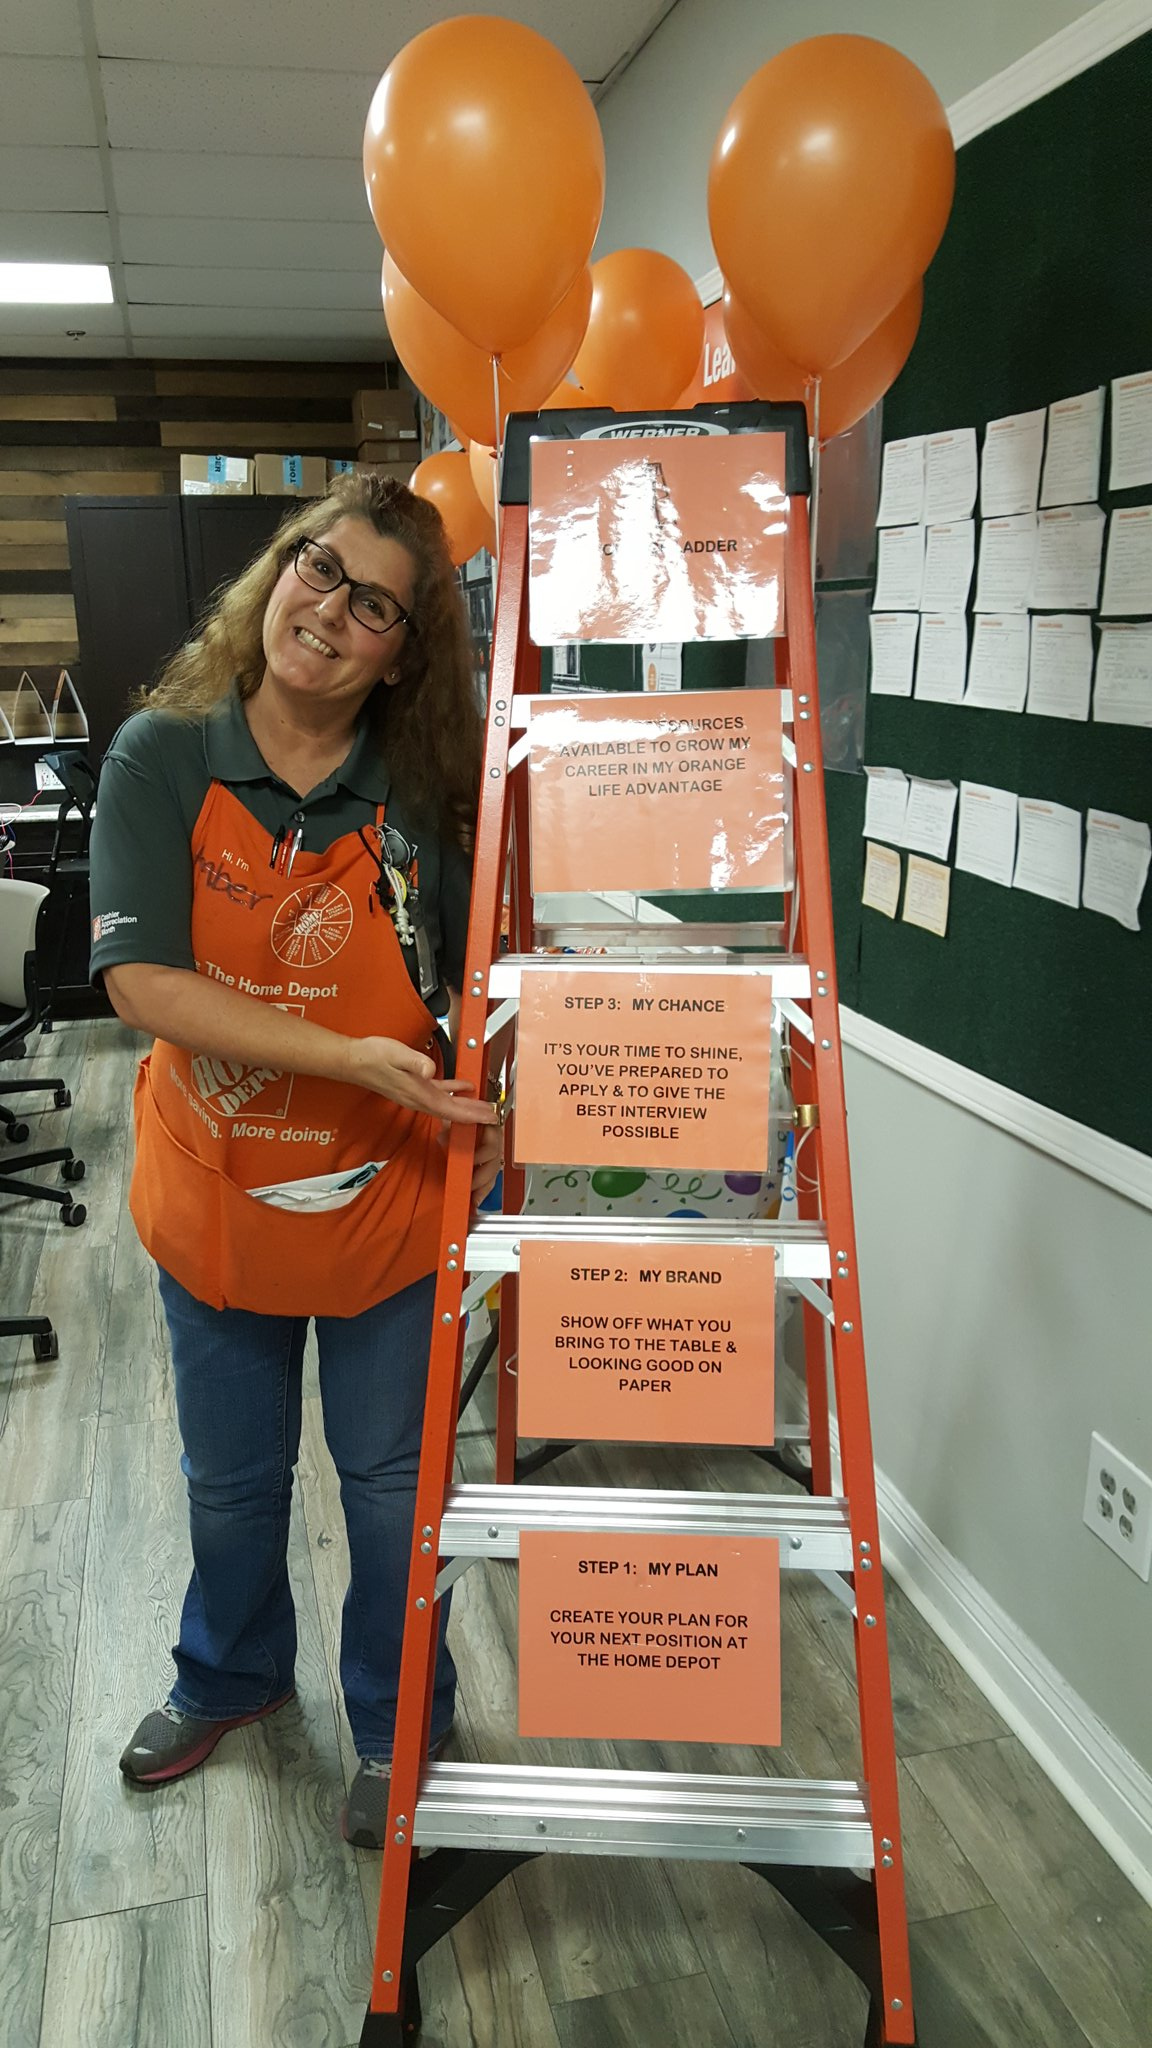 Valerie Schubert On Twitter Career Day At Slo Home Depot 1052 Move Up On My Orange Ladder